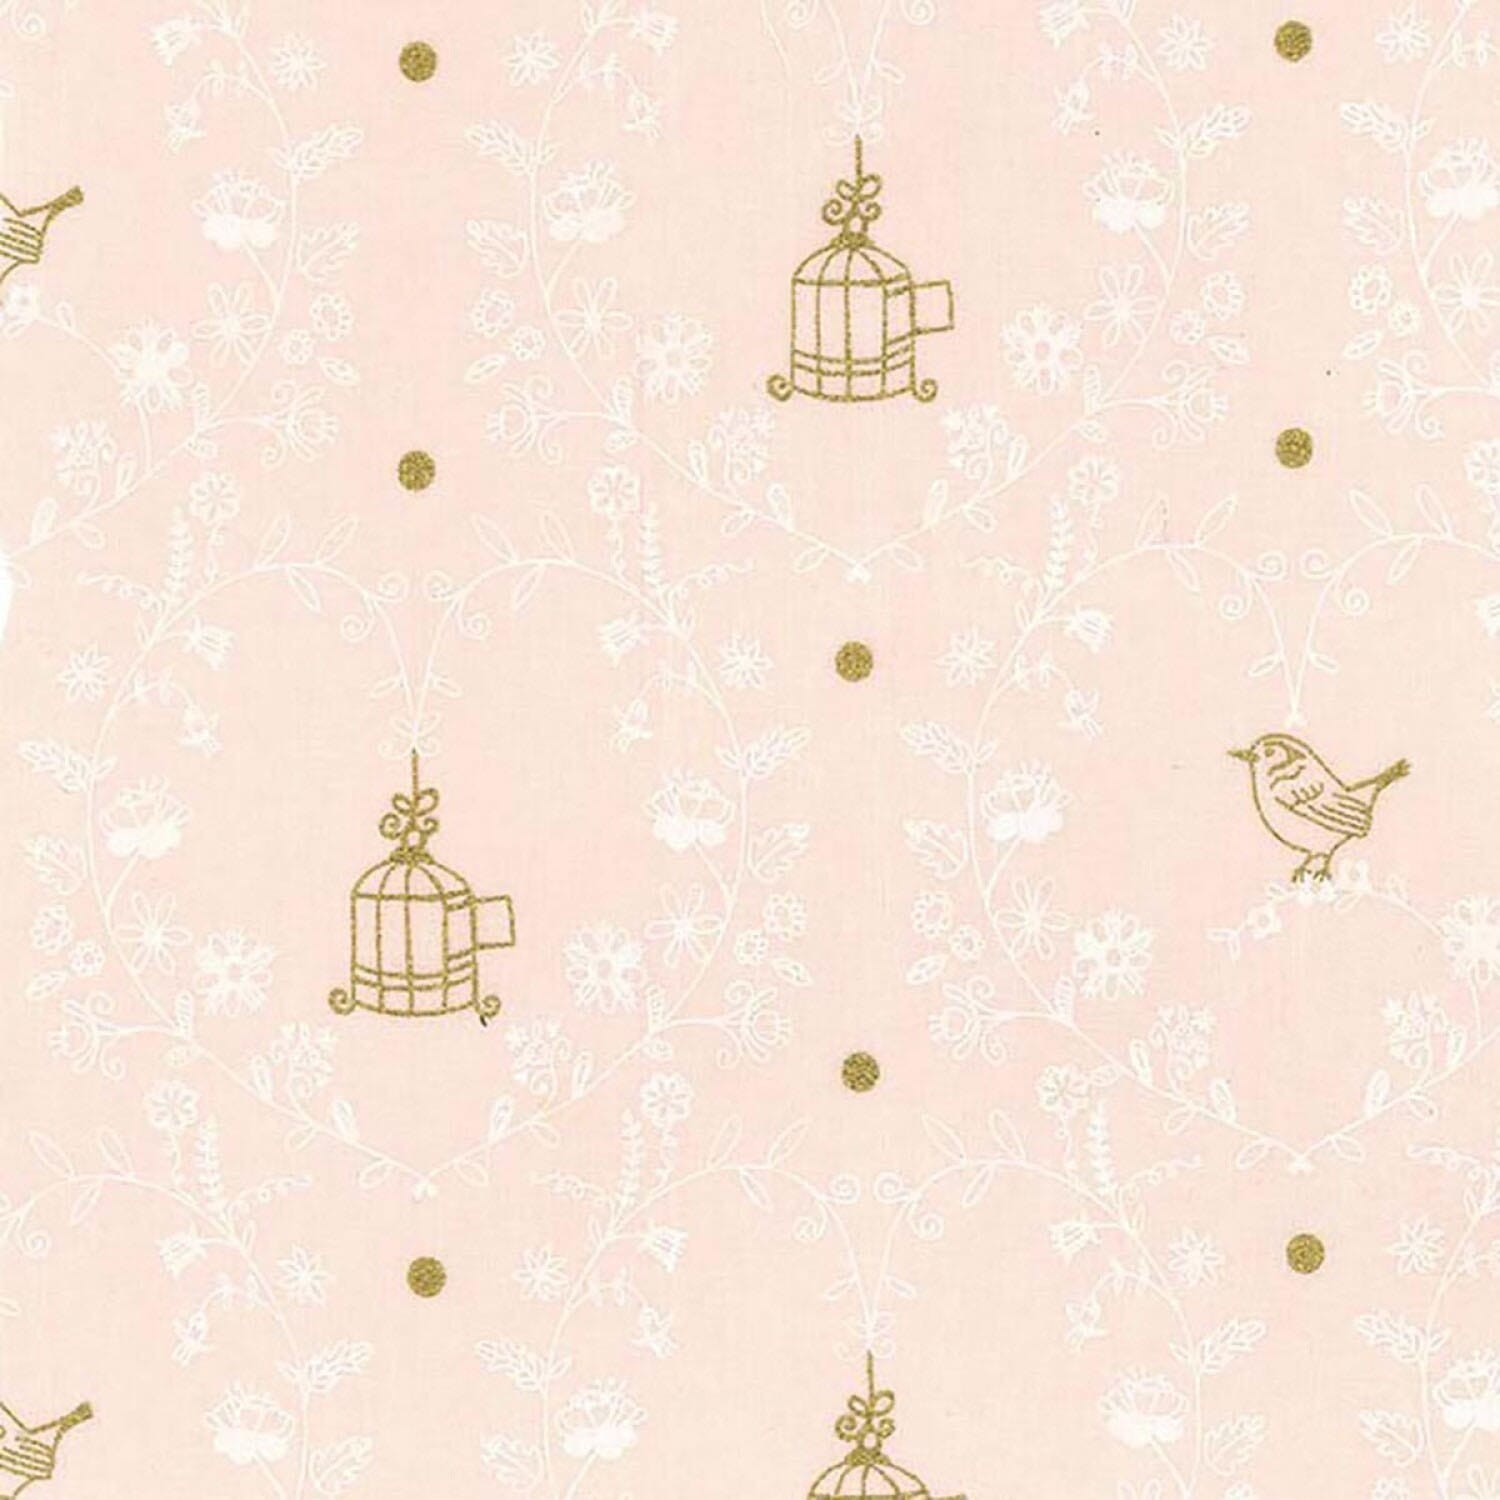 Michael Miller Wee Sparkle Free Bird Confection With Metallic Cotton Fabric